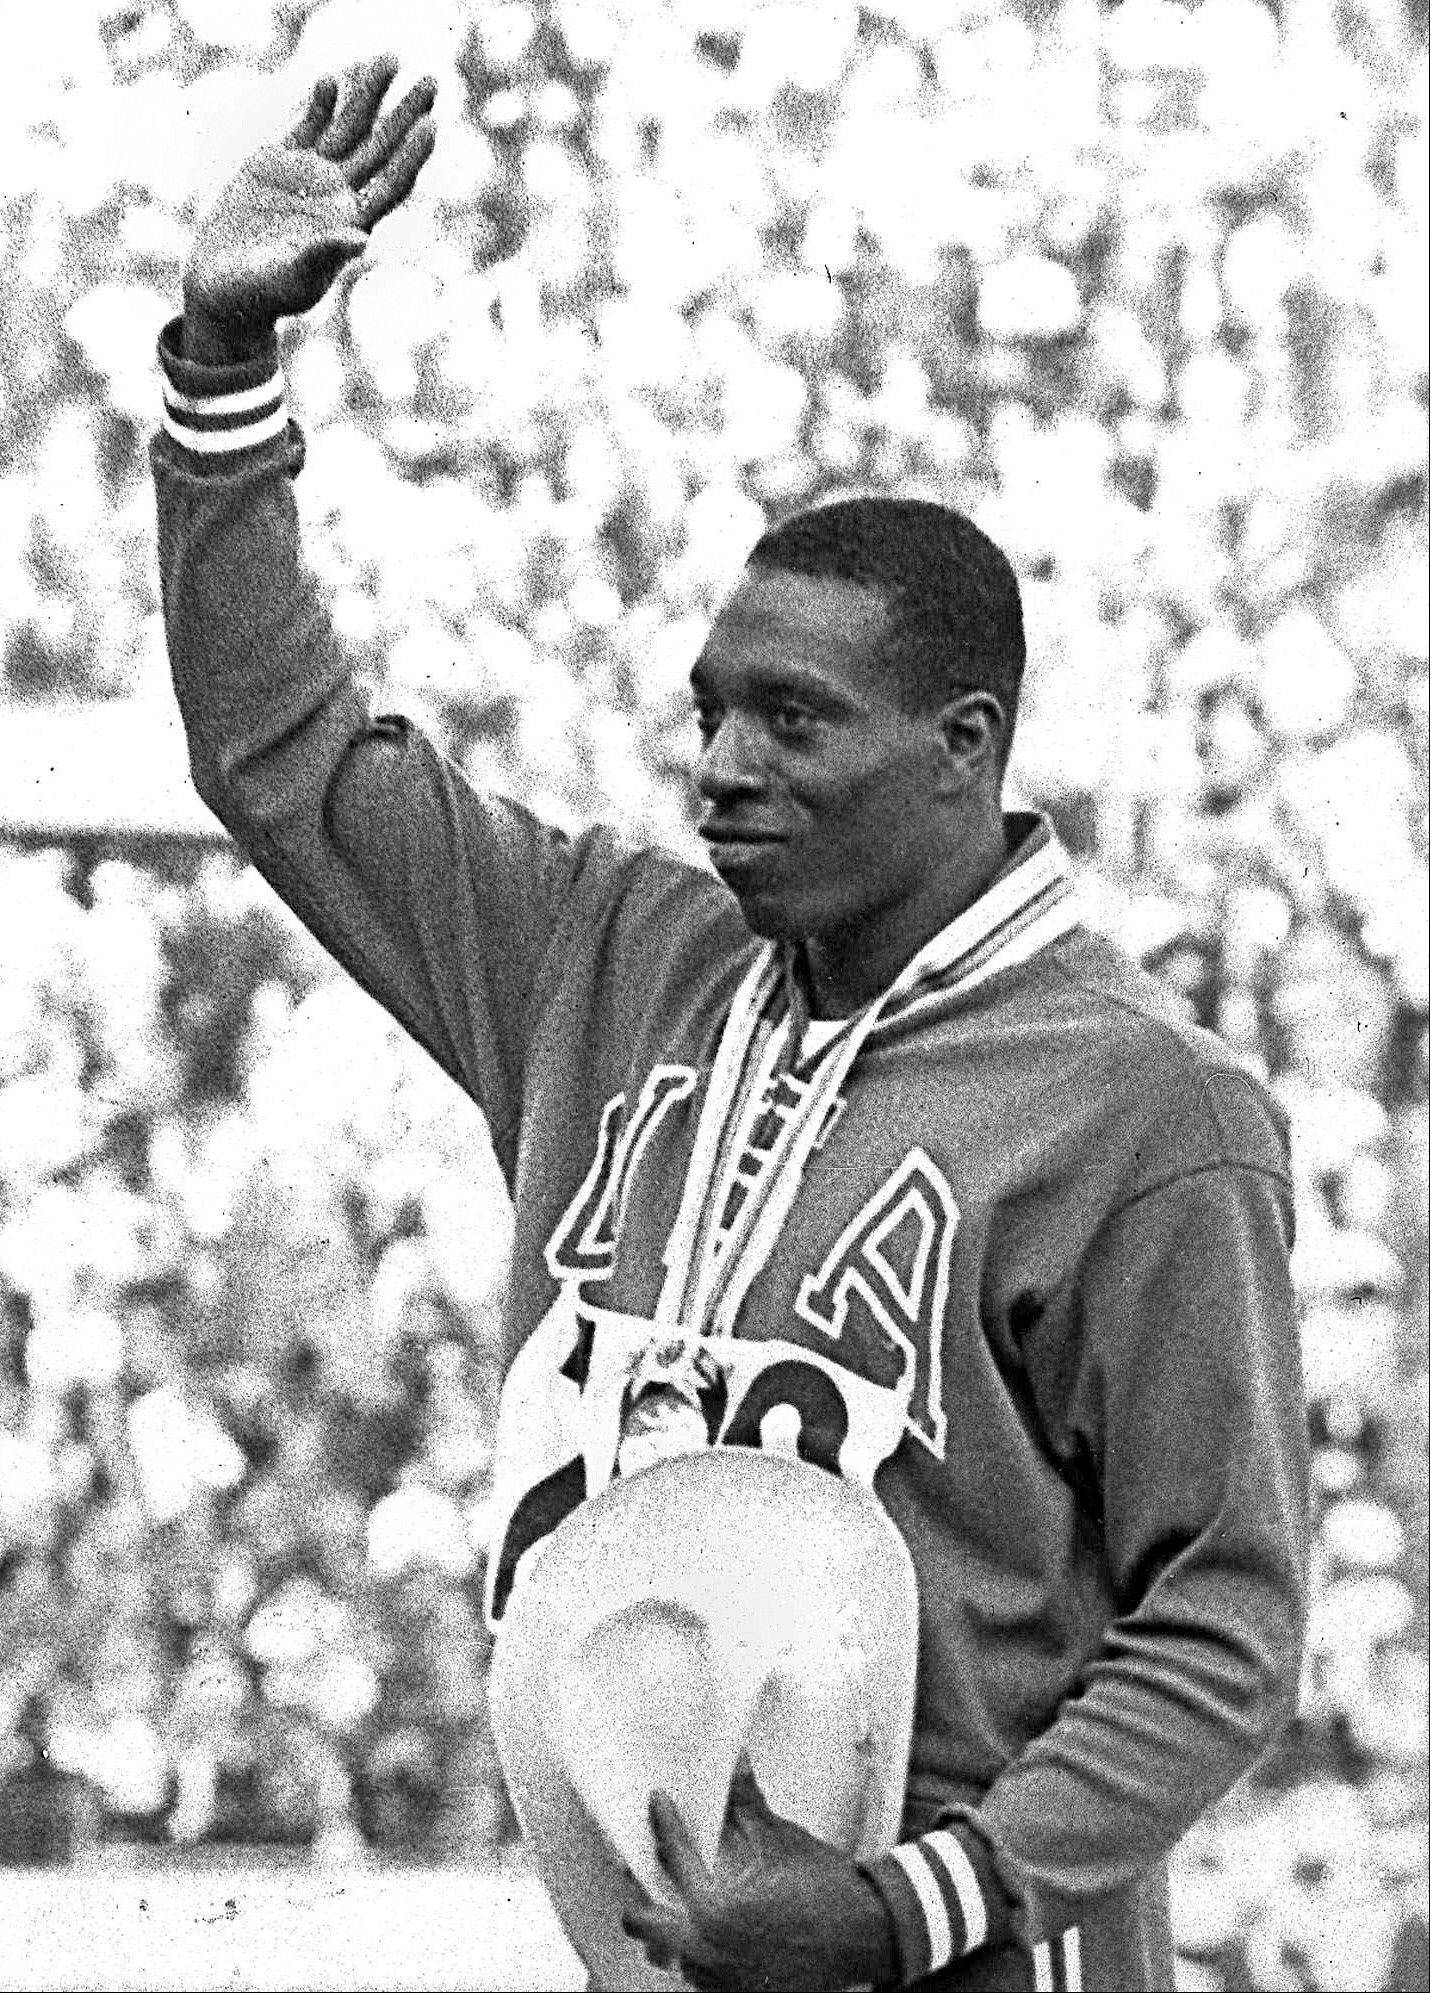 United States sprinter Bob Hayes waves to the crowd from the victory stand after winning the men's 100-meter dash finals at the 1964 Tokyo Summer Olympics. Hayes' gold medal in the 100 meters earned him the designation of the world's fastest human and provided him the opportunity to become the first Olympic champion to make it big in professional football as a wide receiver for nine years with the Dallas Cowboys, and a two-time All-Pro.